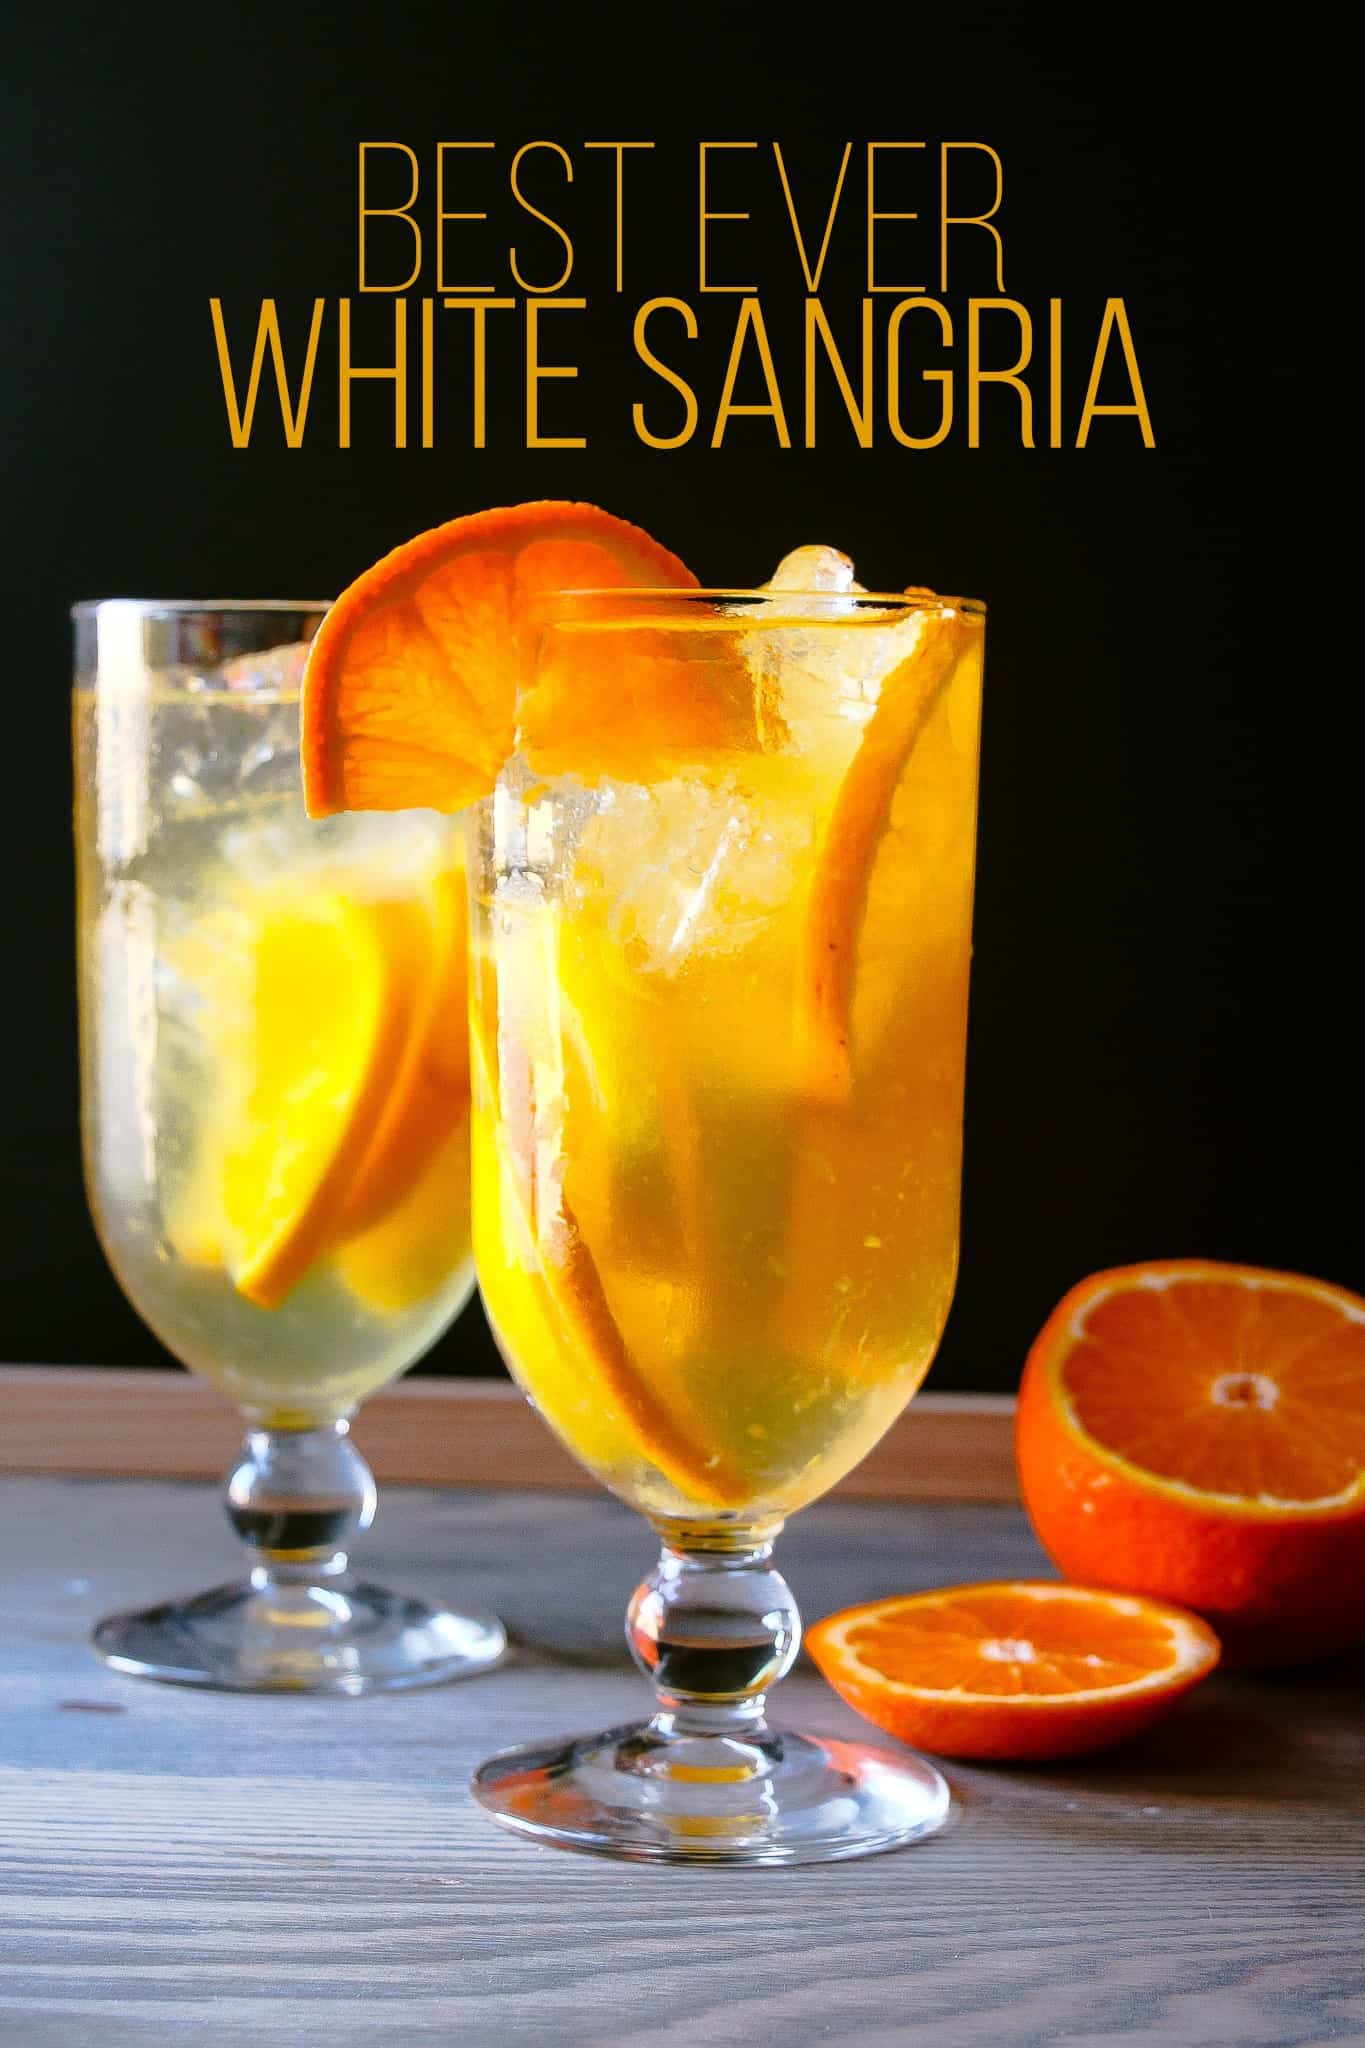 Graceful Happiness Wine Sangria Recipe Ever Layers Sangria Recipe Wine Sangria India nice food Best Wine For Sangria